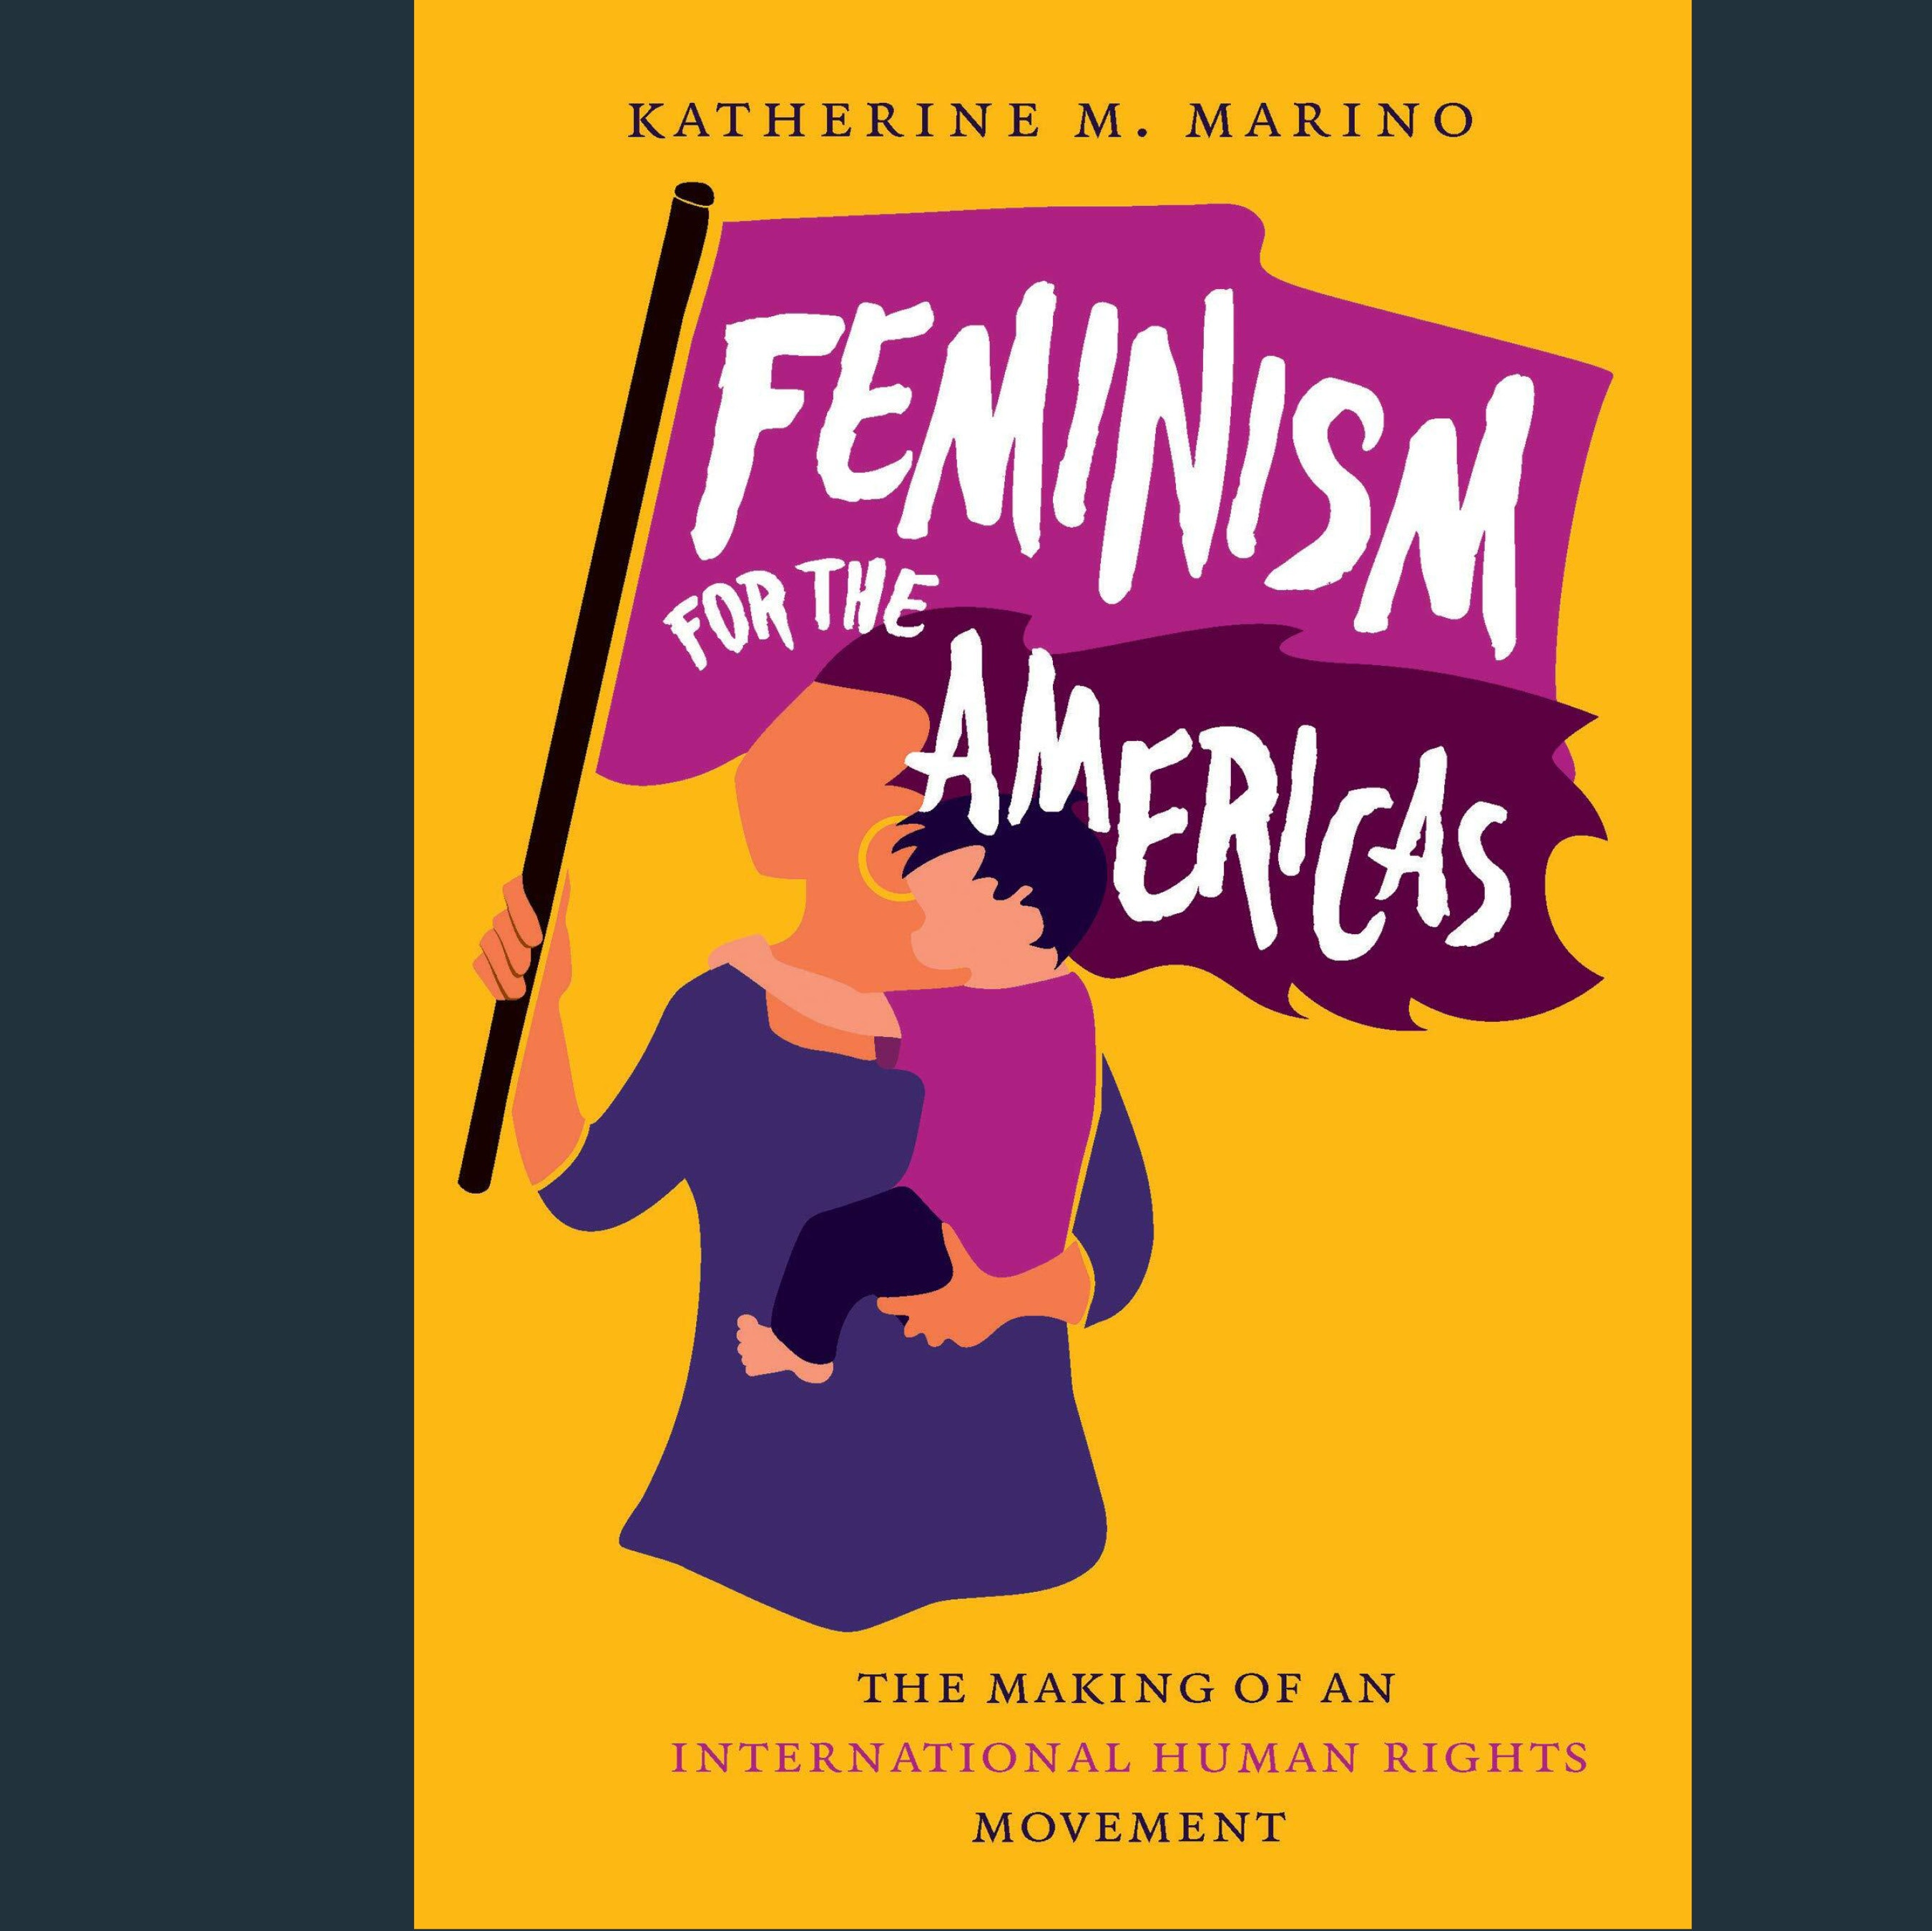 Cover of Katherine M. Marino's Feminism for the Americas